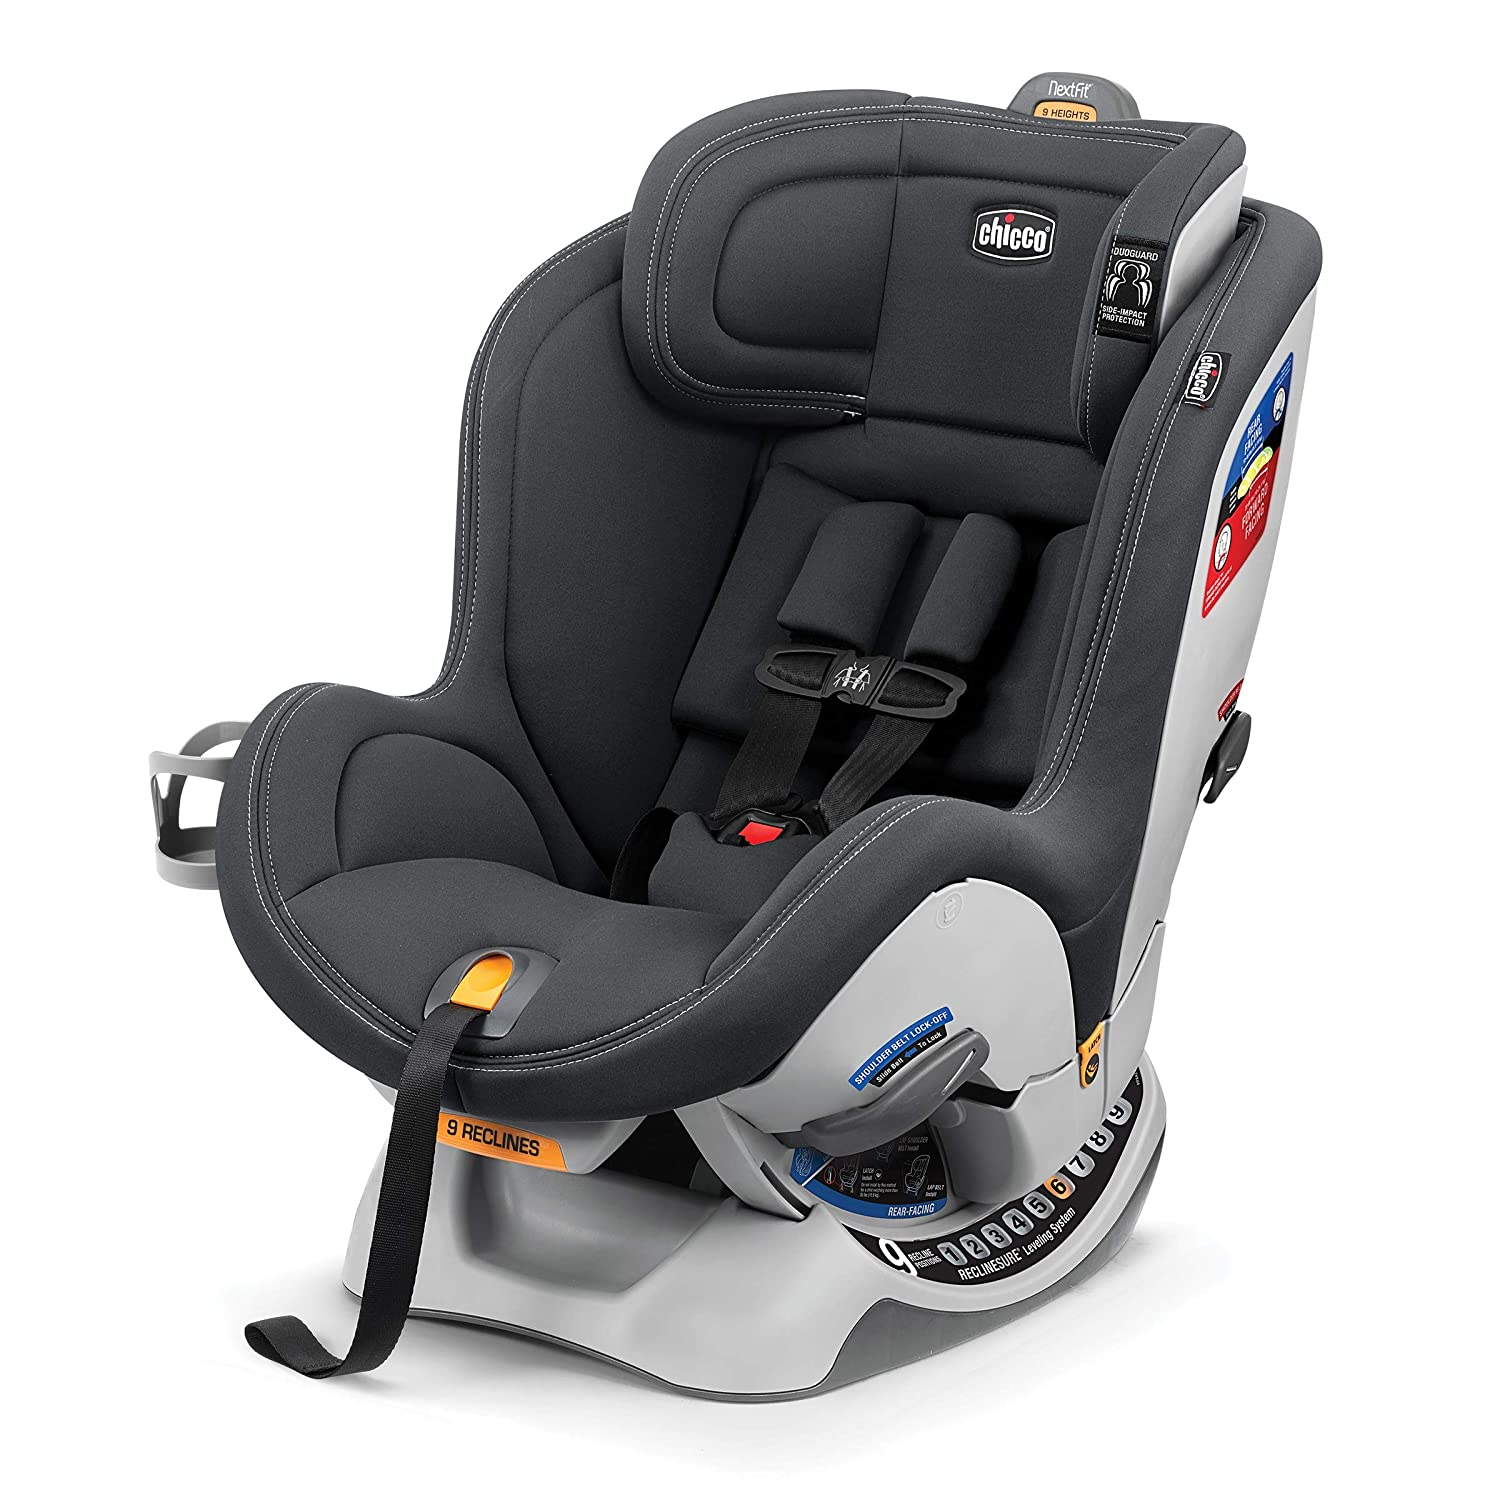 Chicco NextFit Sport Convertible Car Seat, Graphite